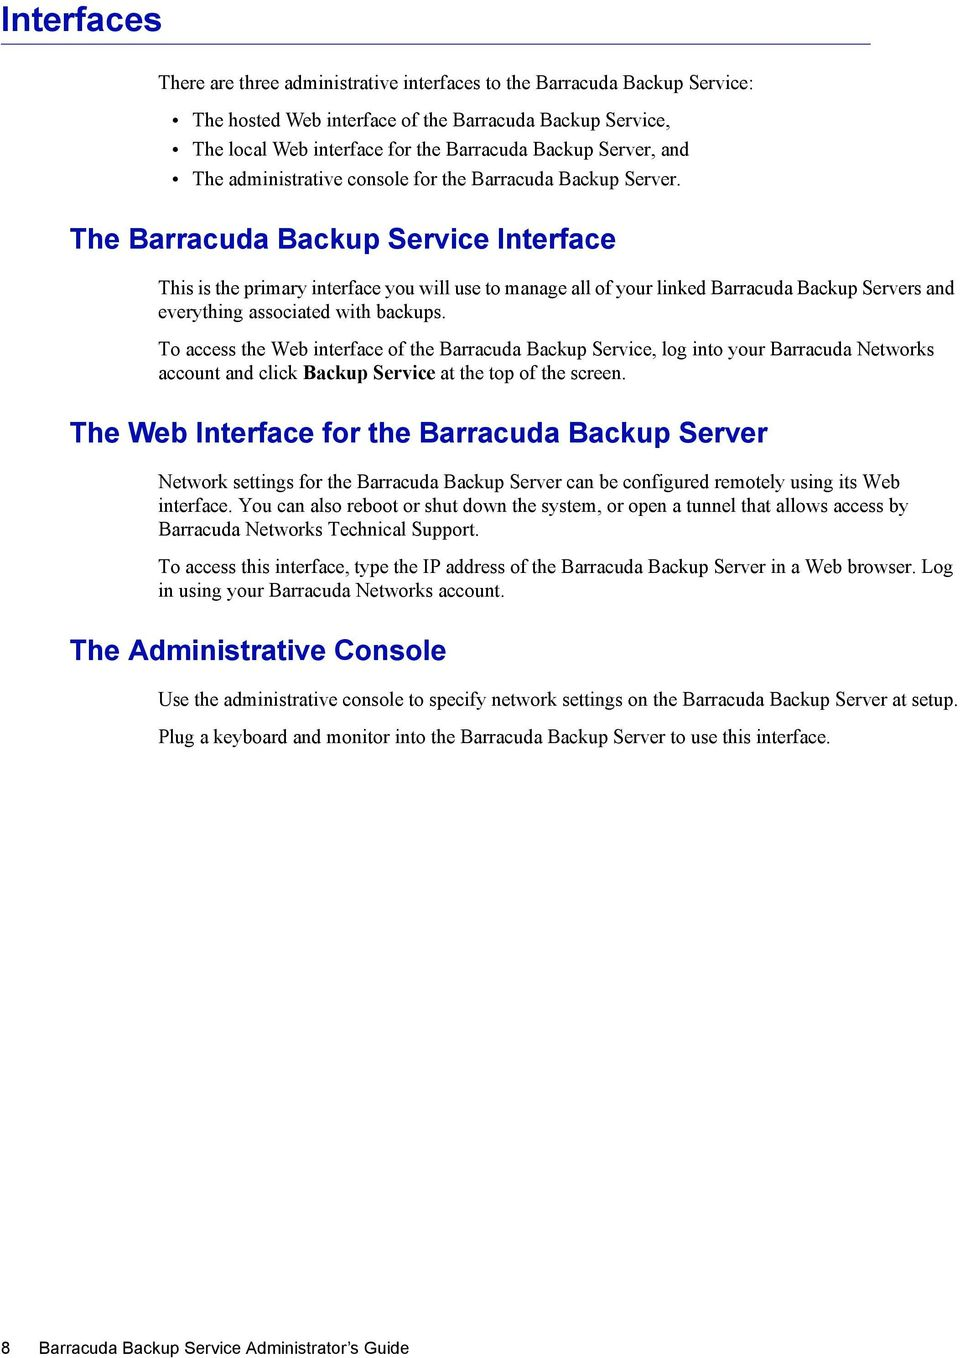 The Barracuda Backup Service Interface This is the primary interface you will use to manage all of your linked Barracuda Backup Servers and everything associated with backups.